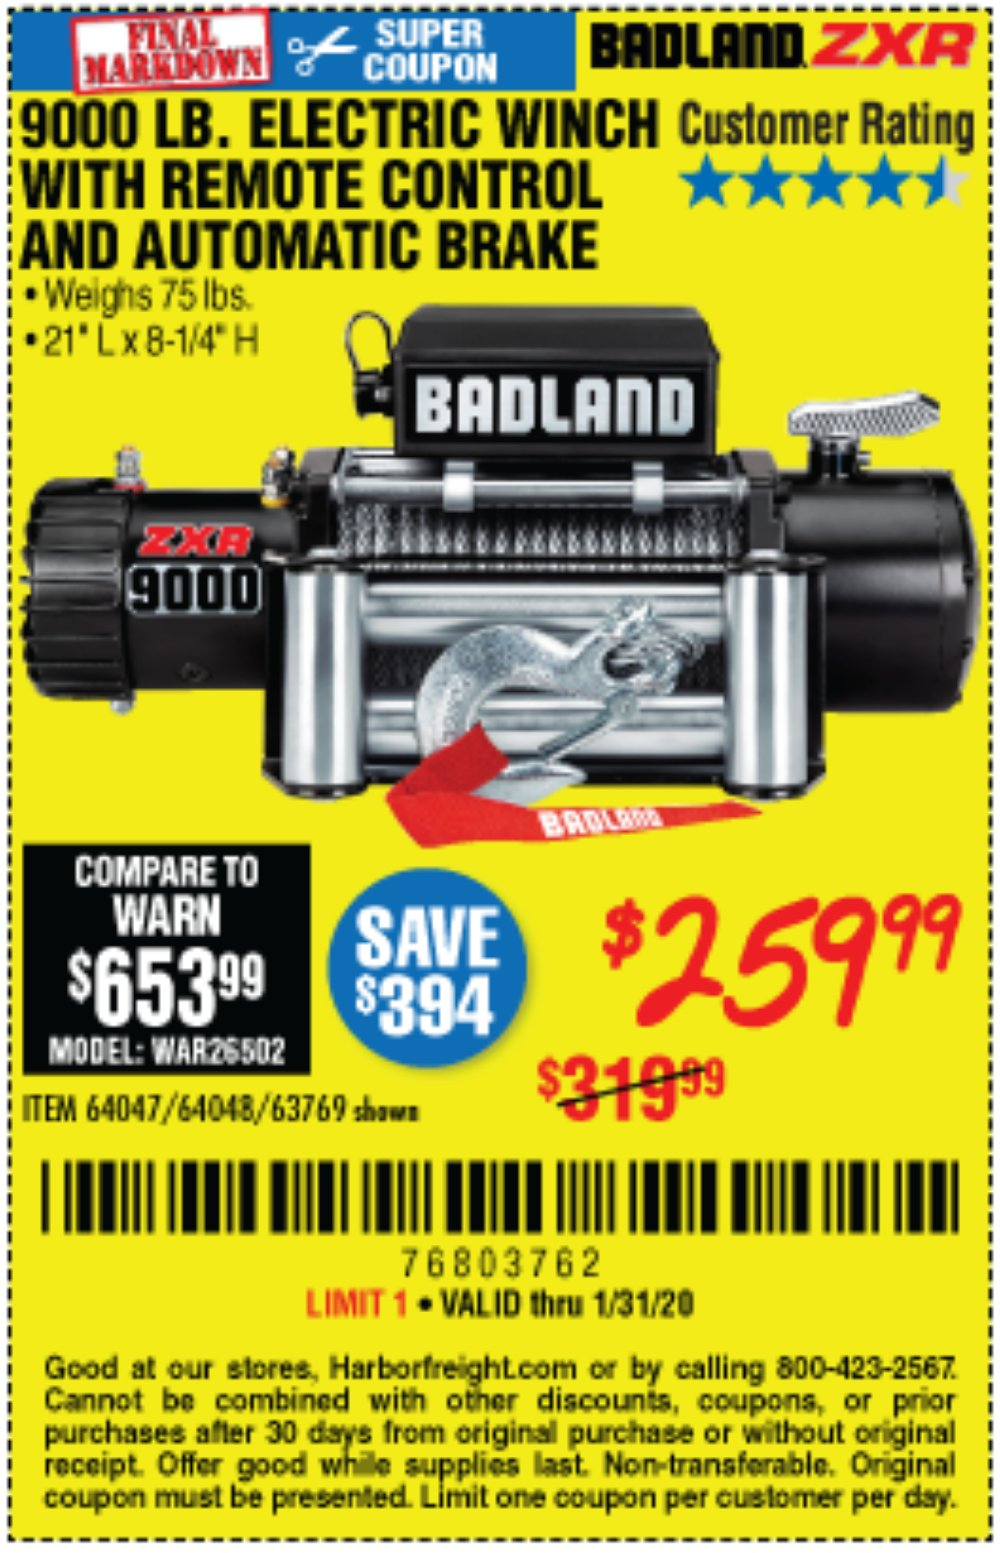 Harbor Freight Coupon, HF Coupons - Badland Zxr9000 9000 Lb Winch